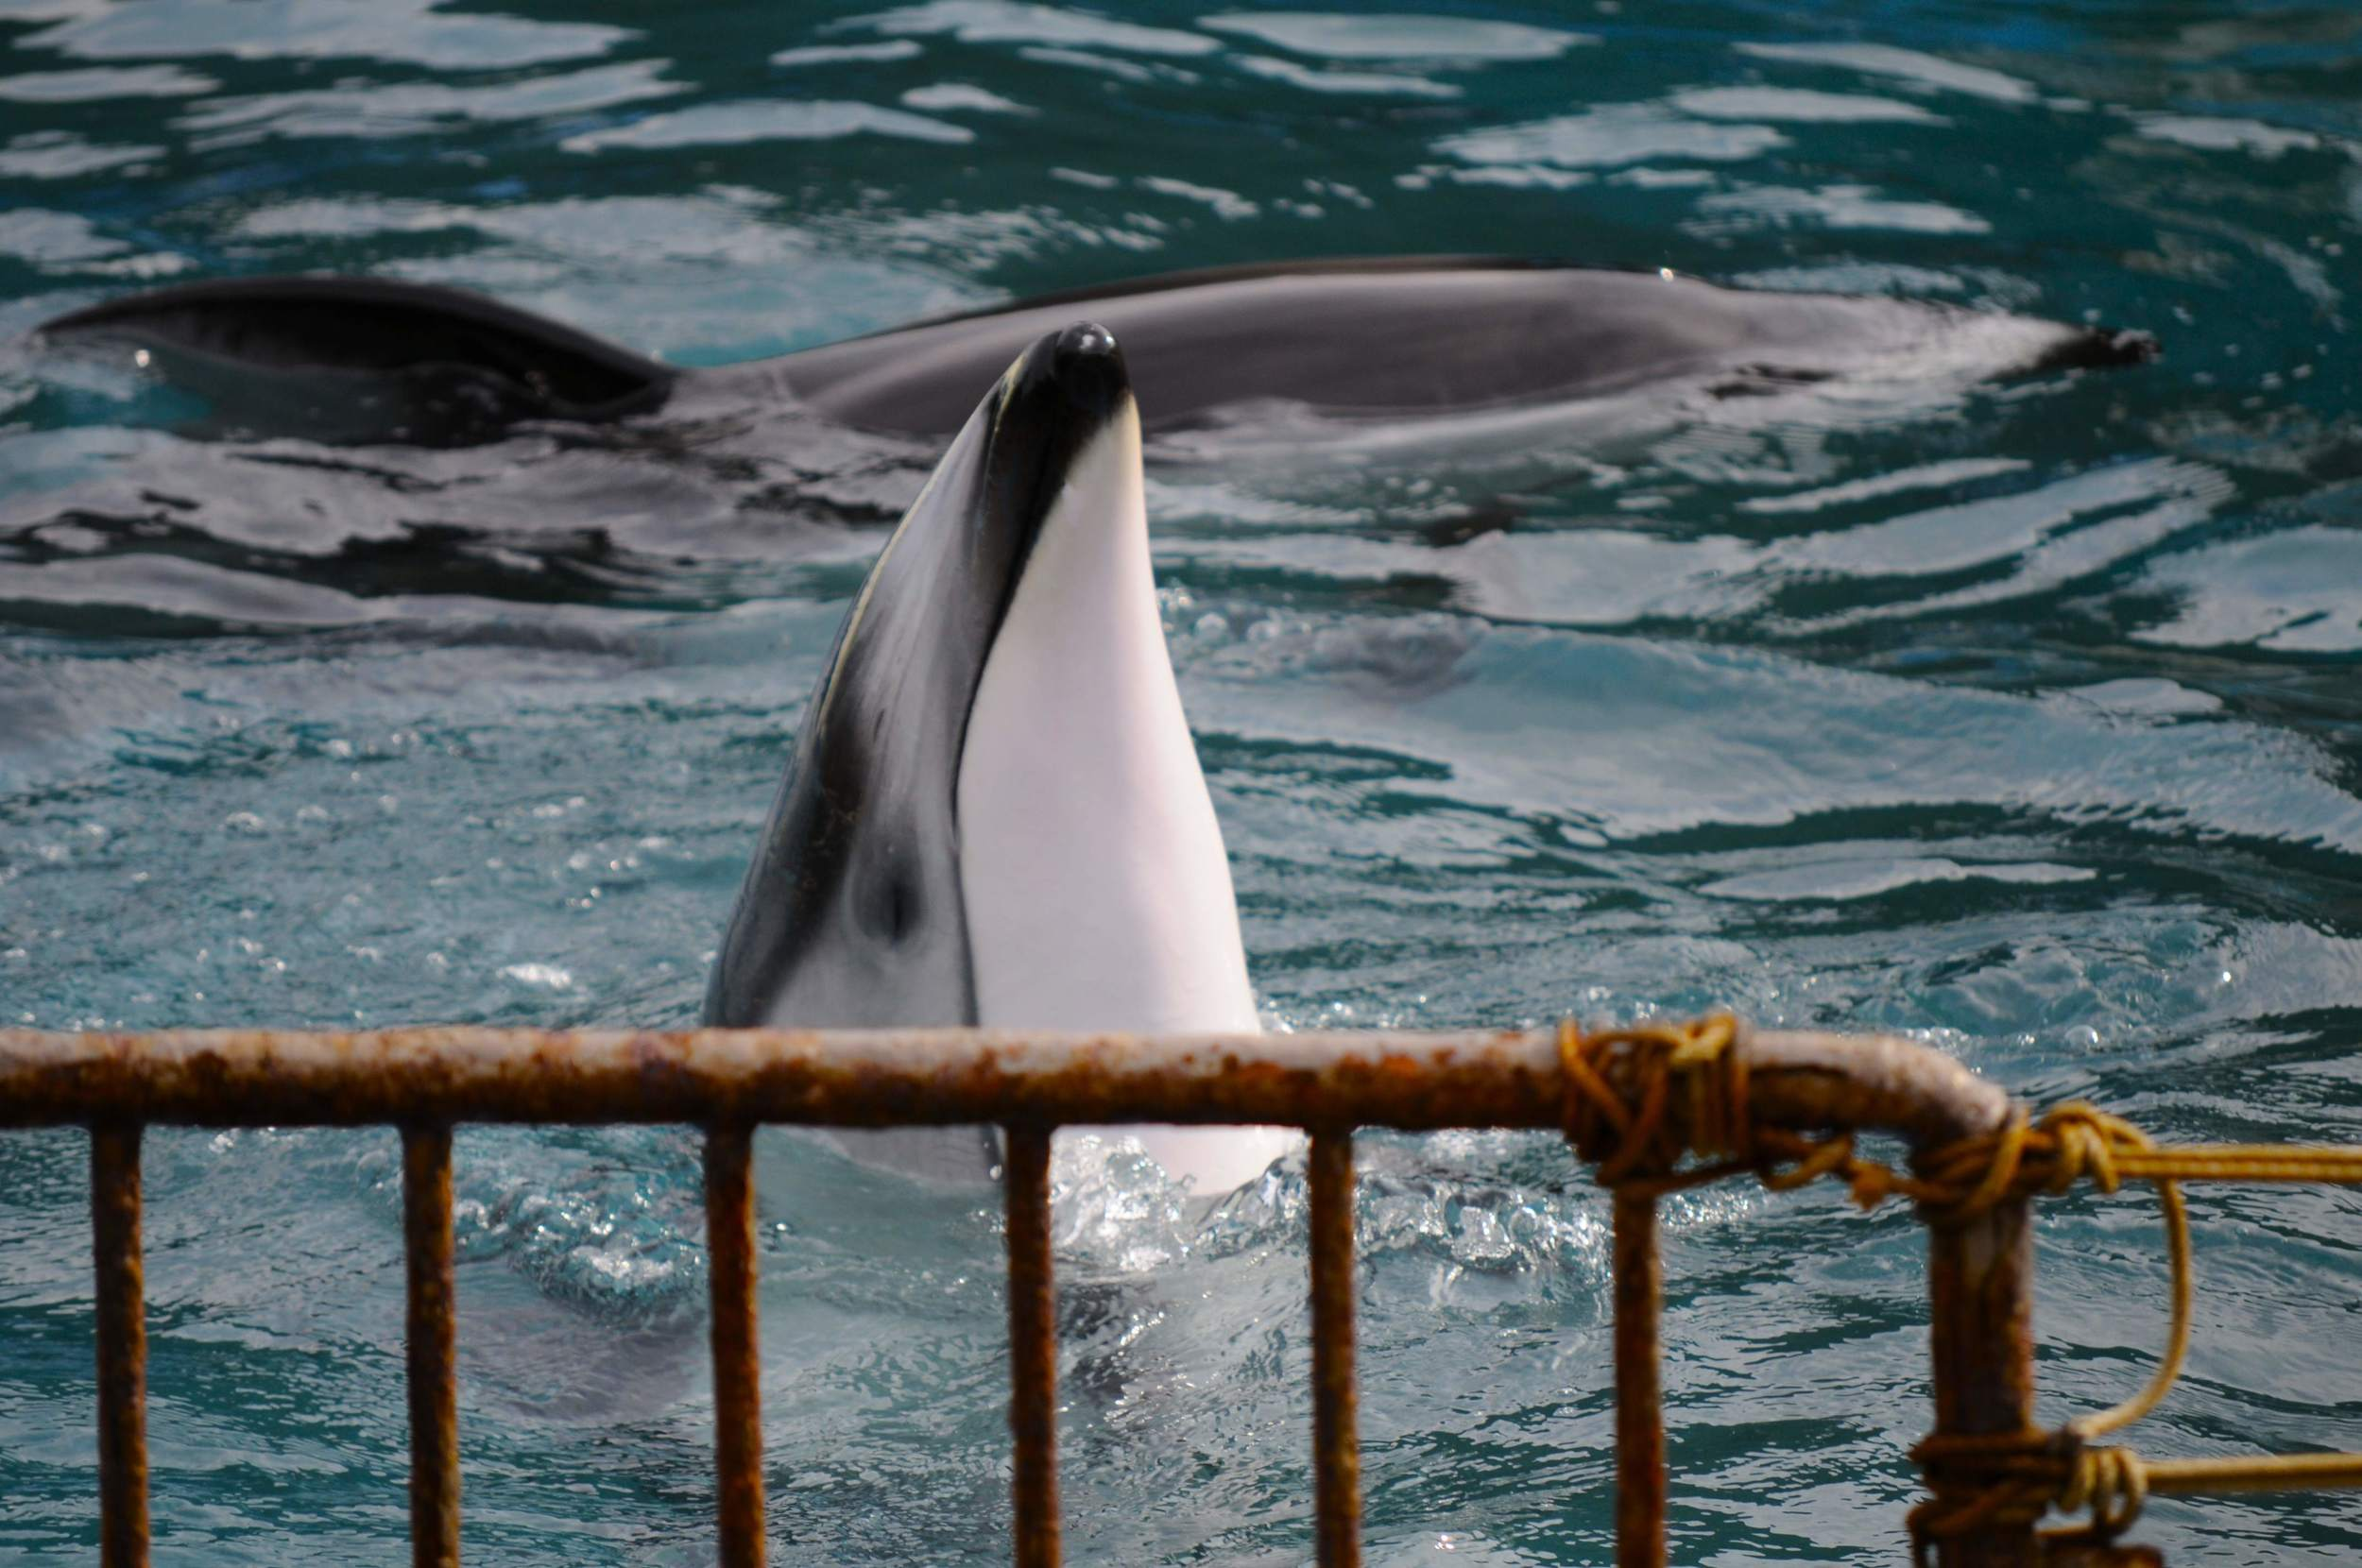 Pacific white-sided dolphin in captivity - Taiji, Japan